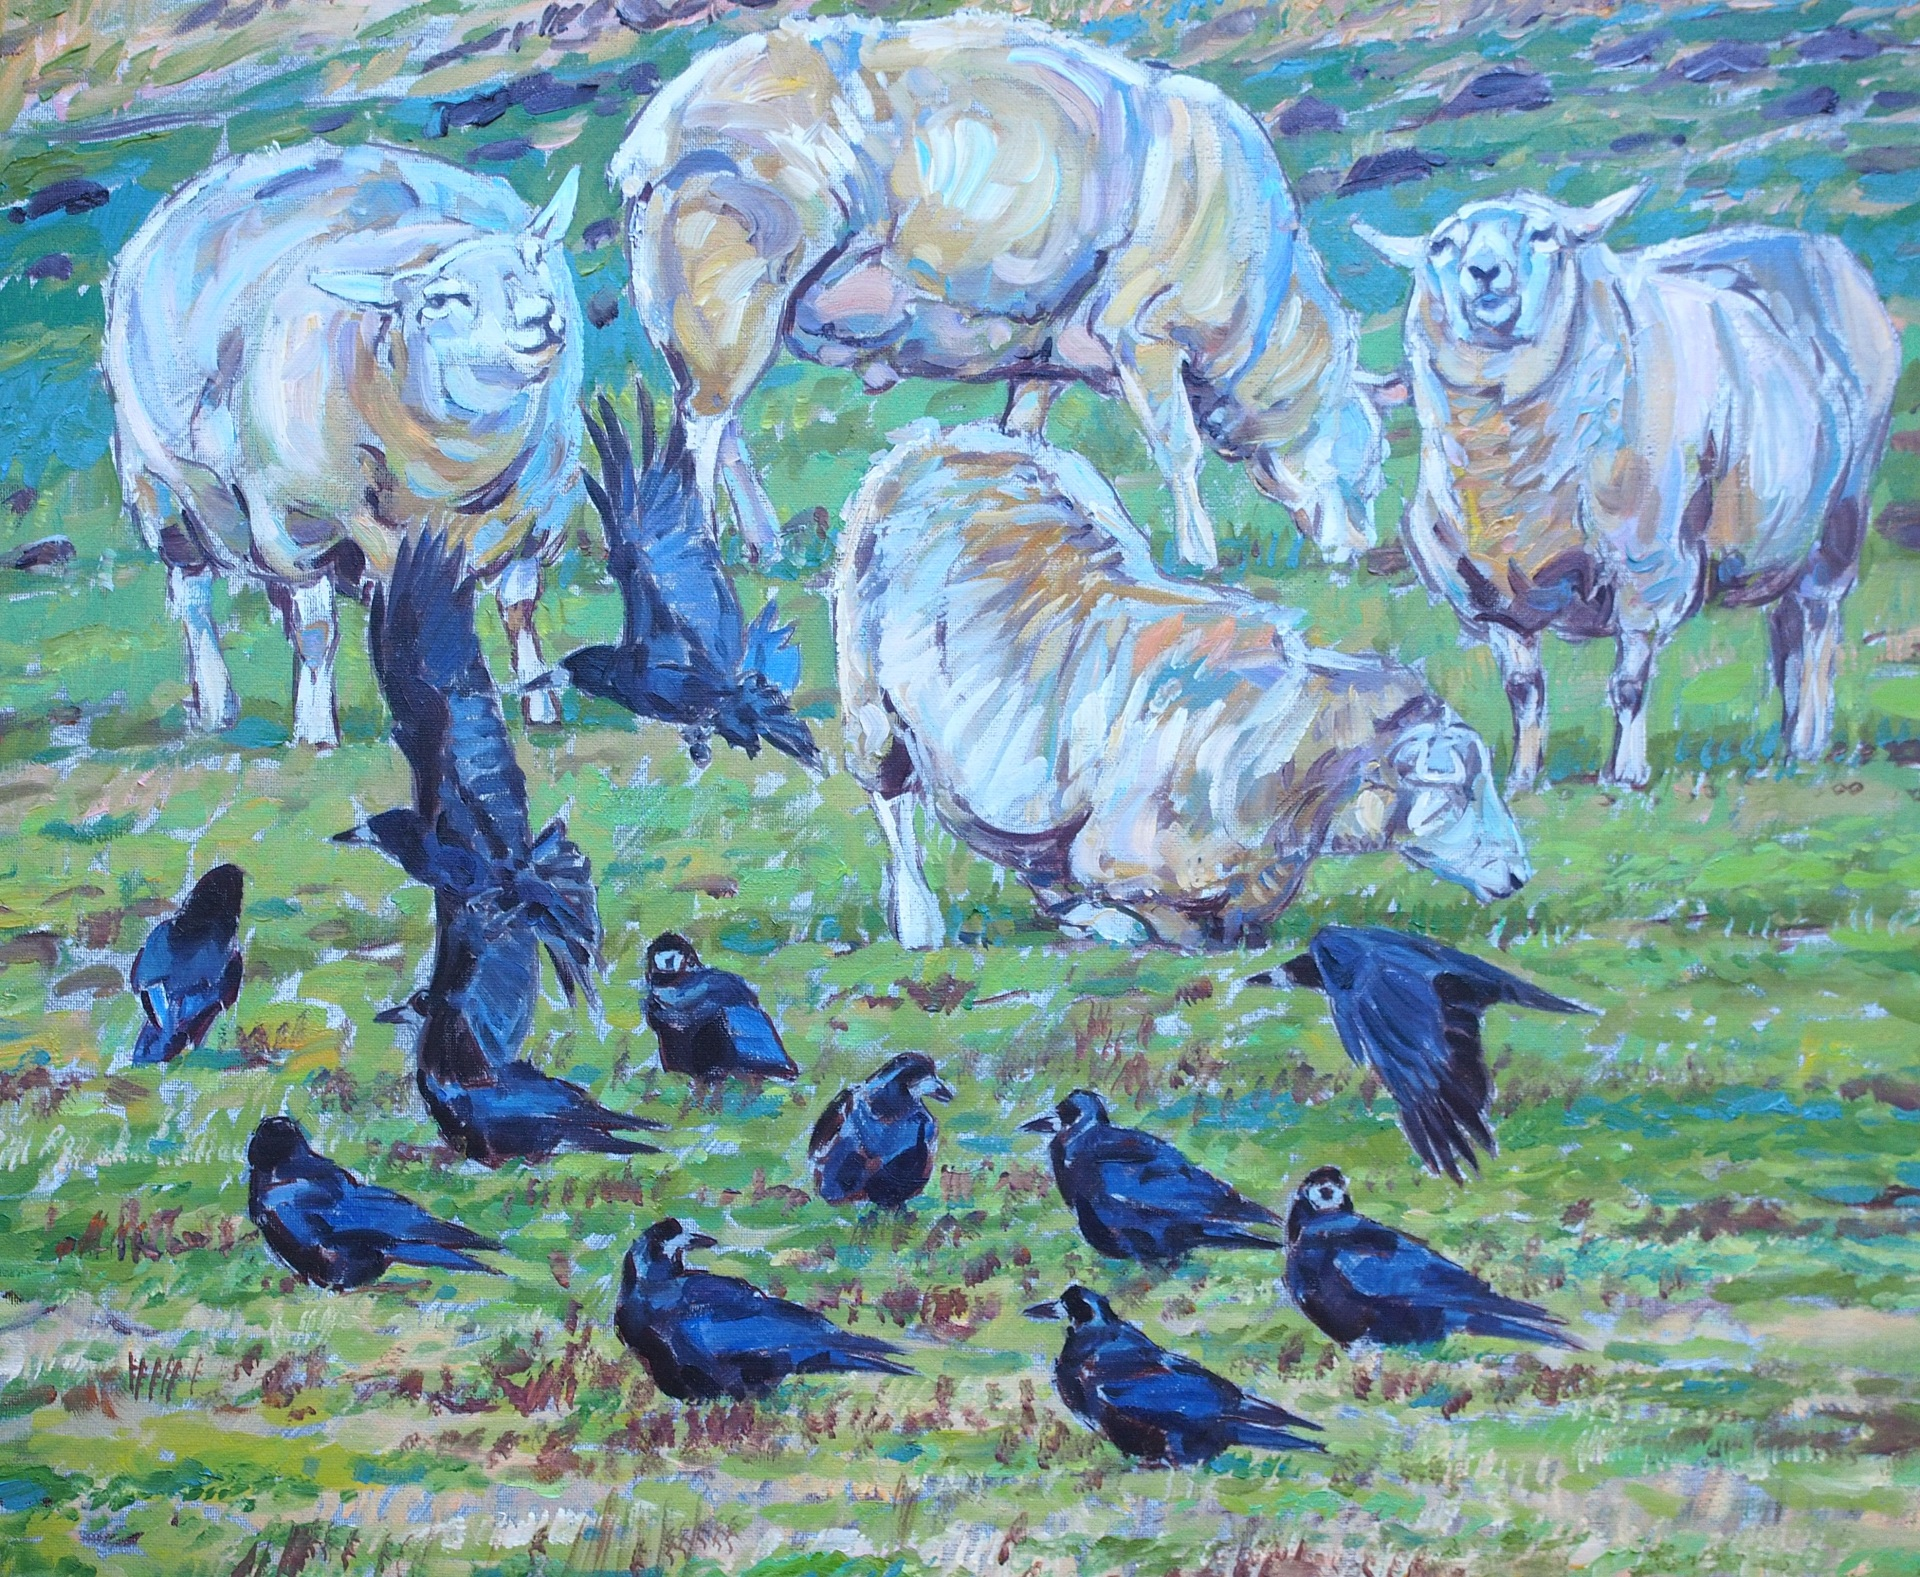 Rooks and Sheep